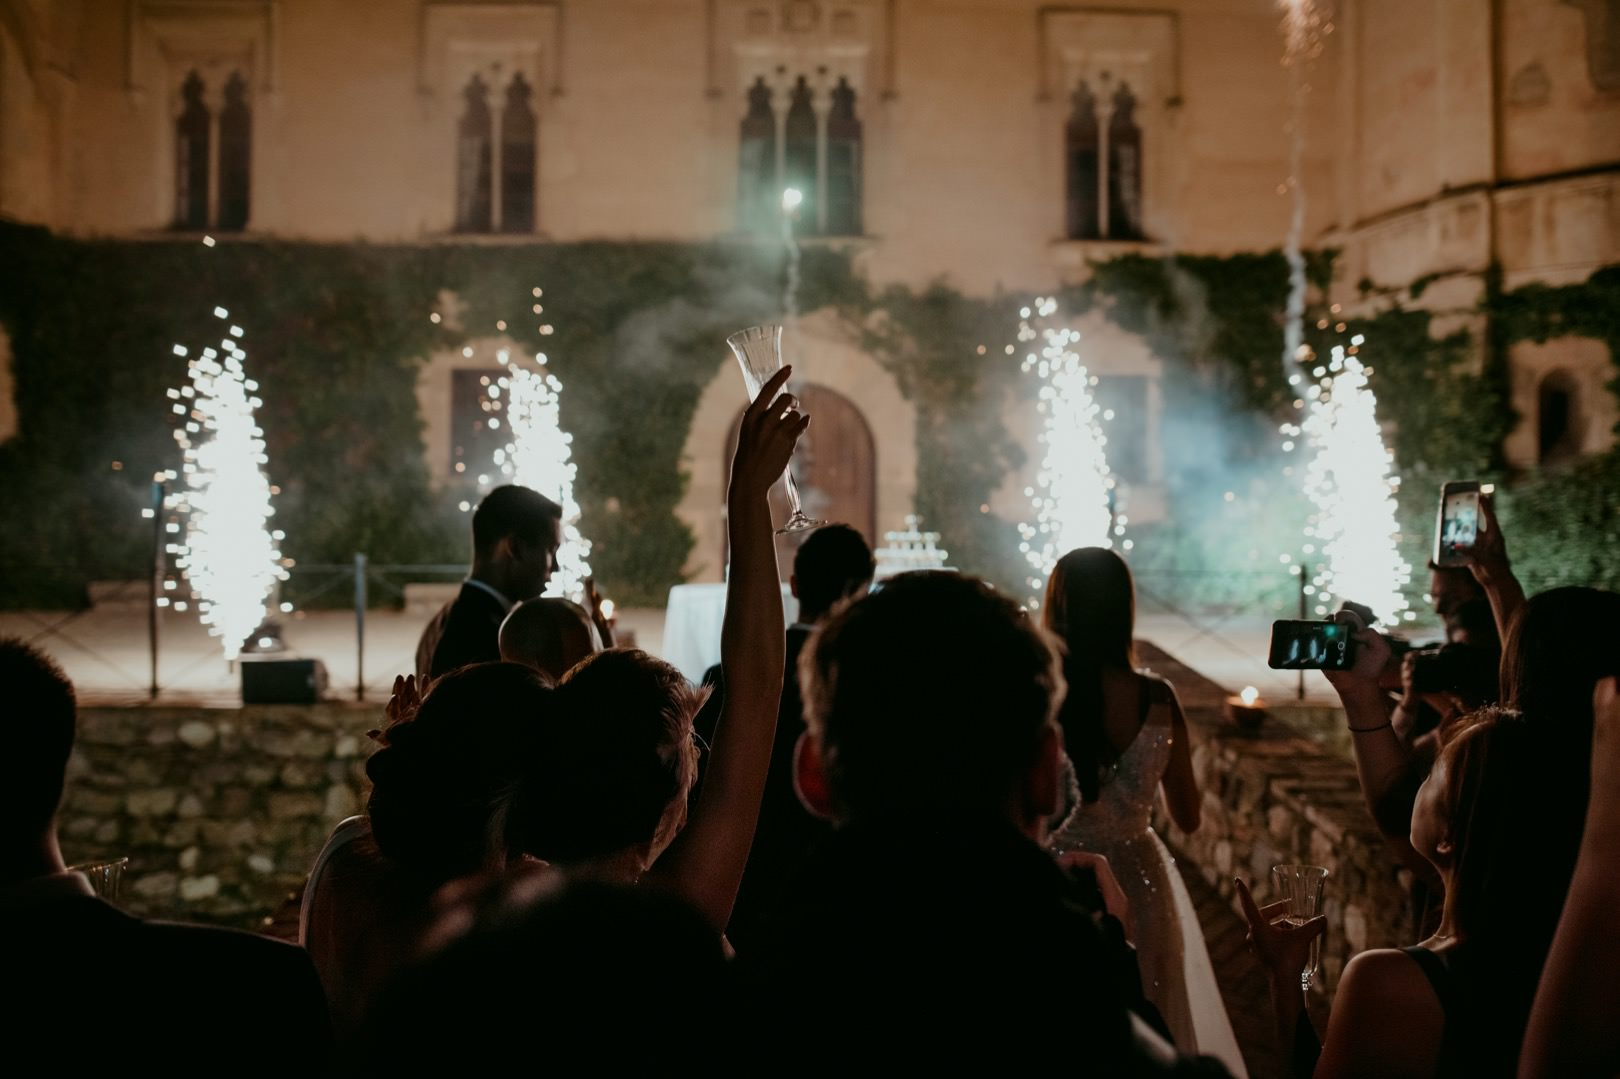 Fireworks wedding reception at Castell de Sant Marcal